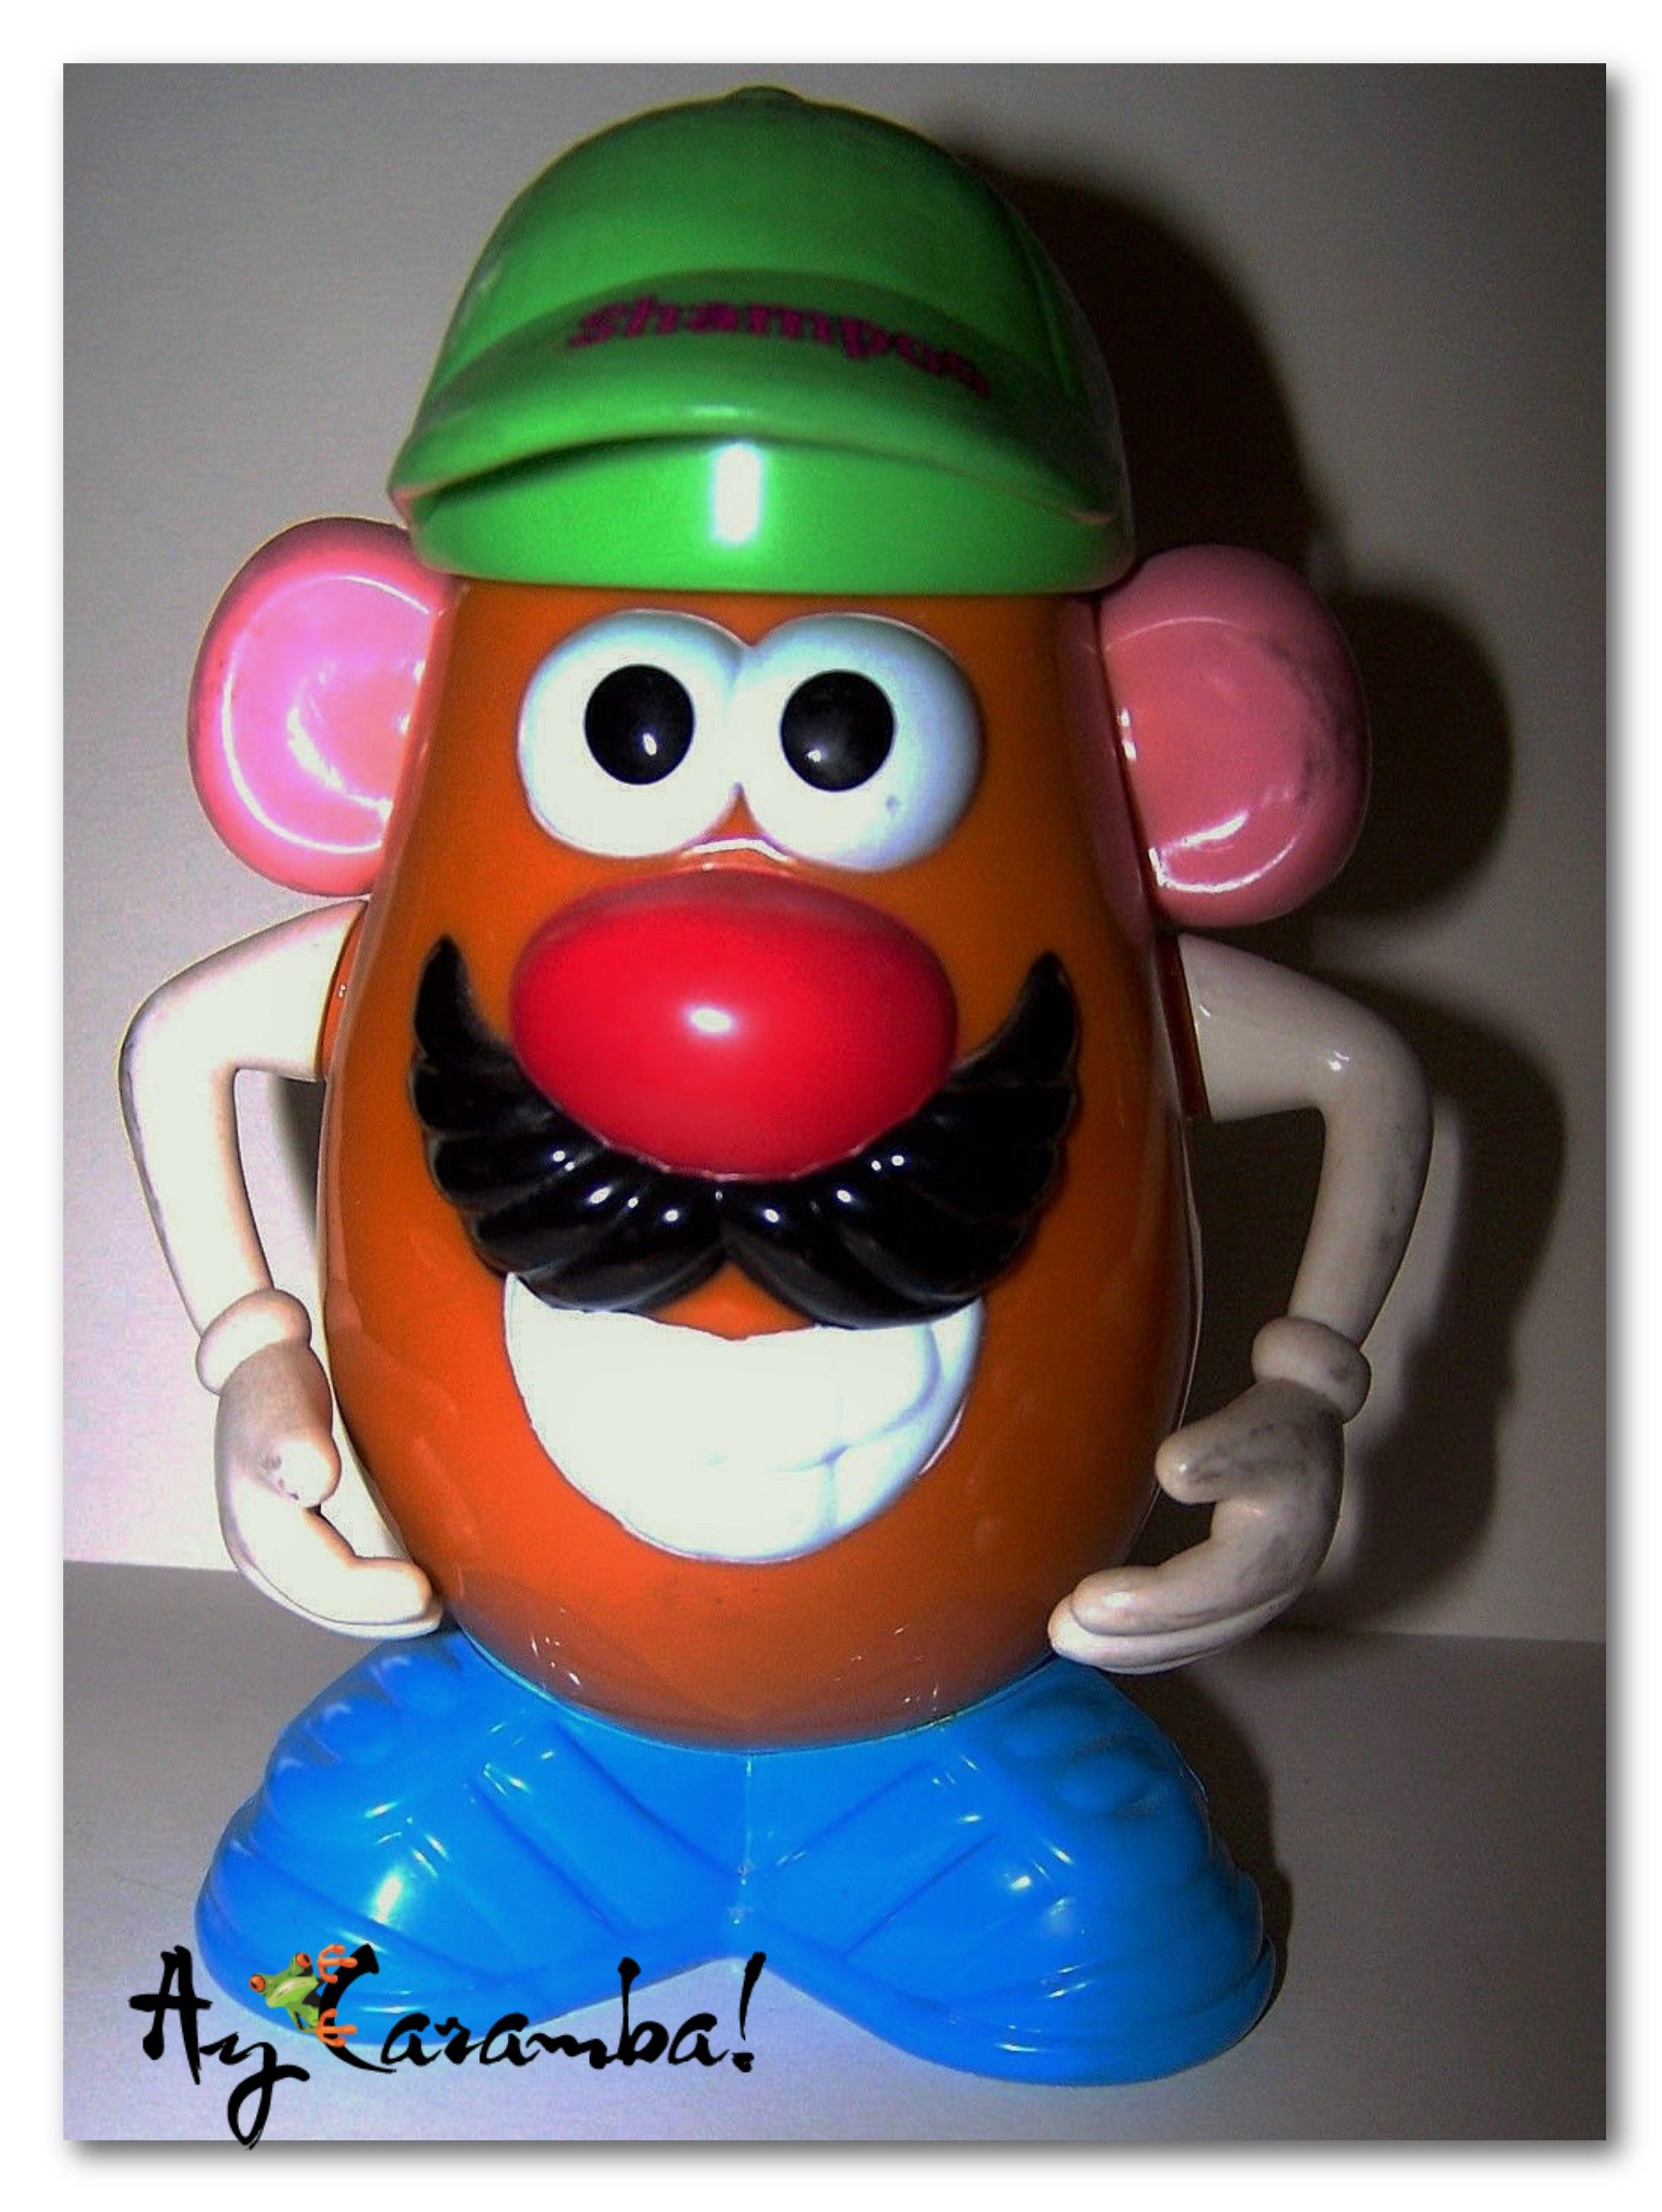 An awesome bath buddy for any fan of Toy Story! Oh, and its never been opened! Double the fun! https://www.etsy.com/listing/175522488/vintage-disneys-toy-story-mr-potato-head?ref=shop_home_active_4